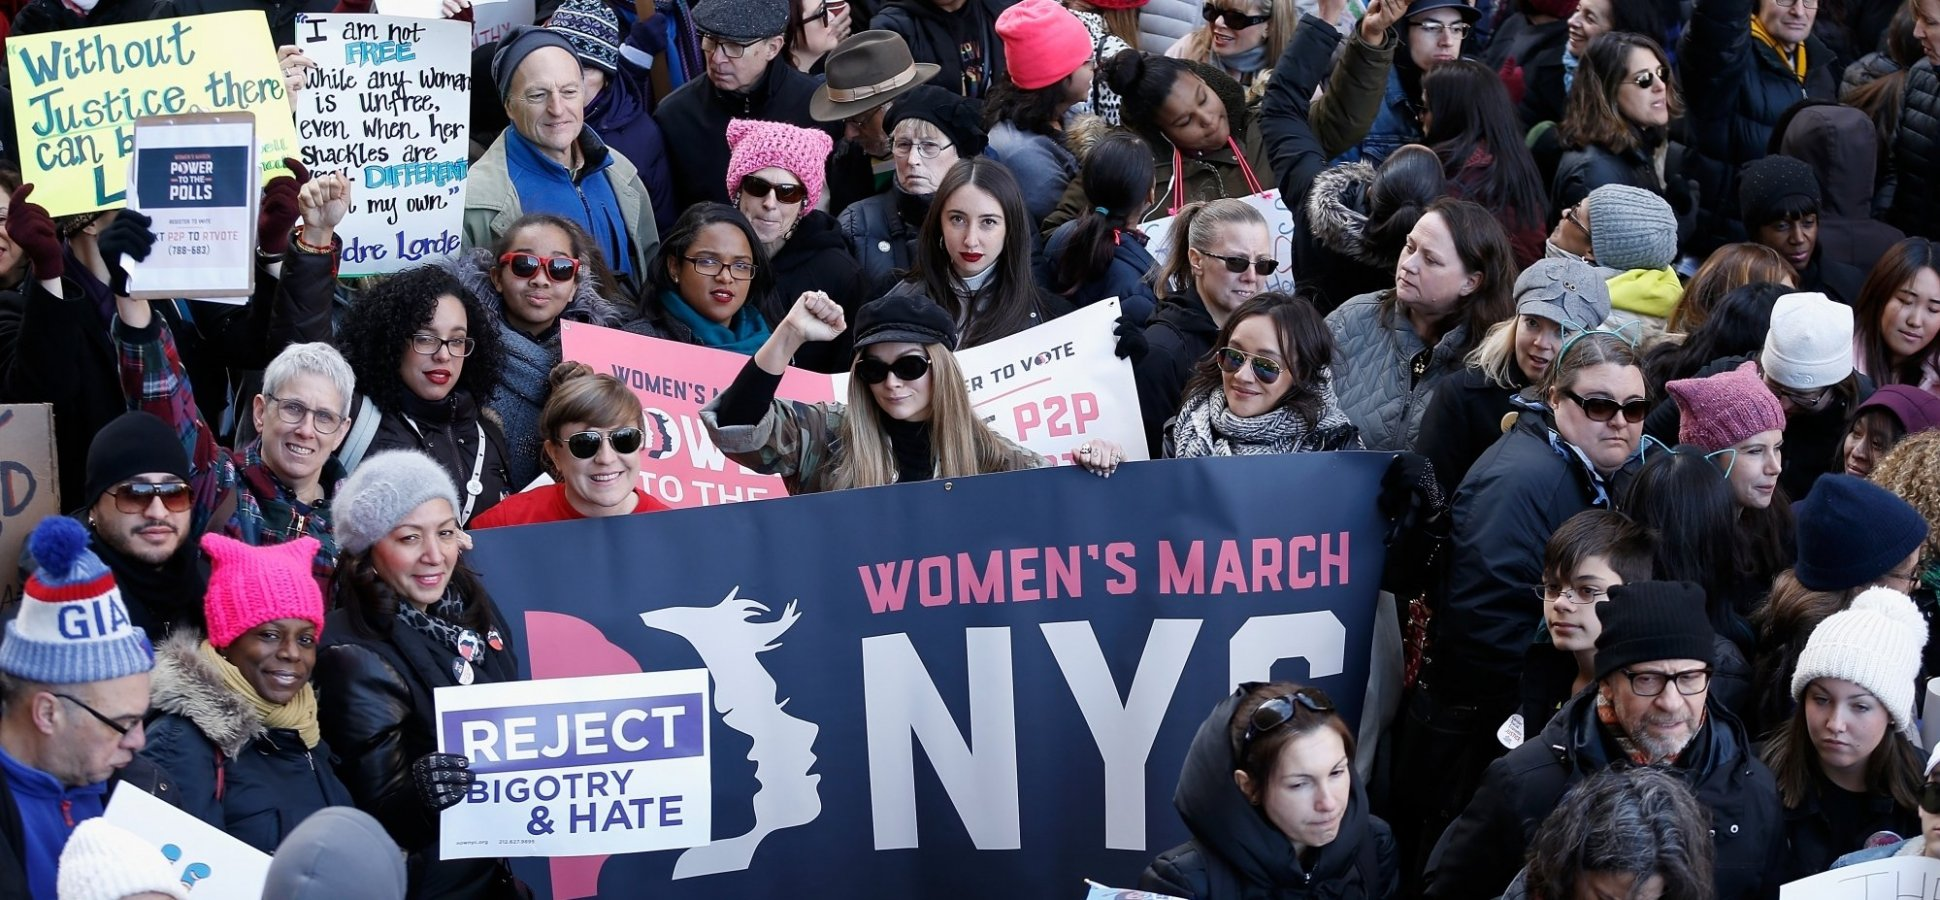 At the New York Women's March: A New Crowdfunding Platform for Women of Color